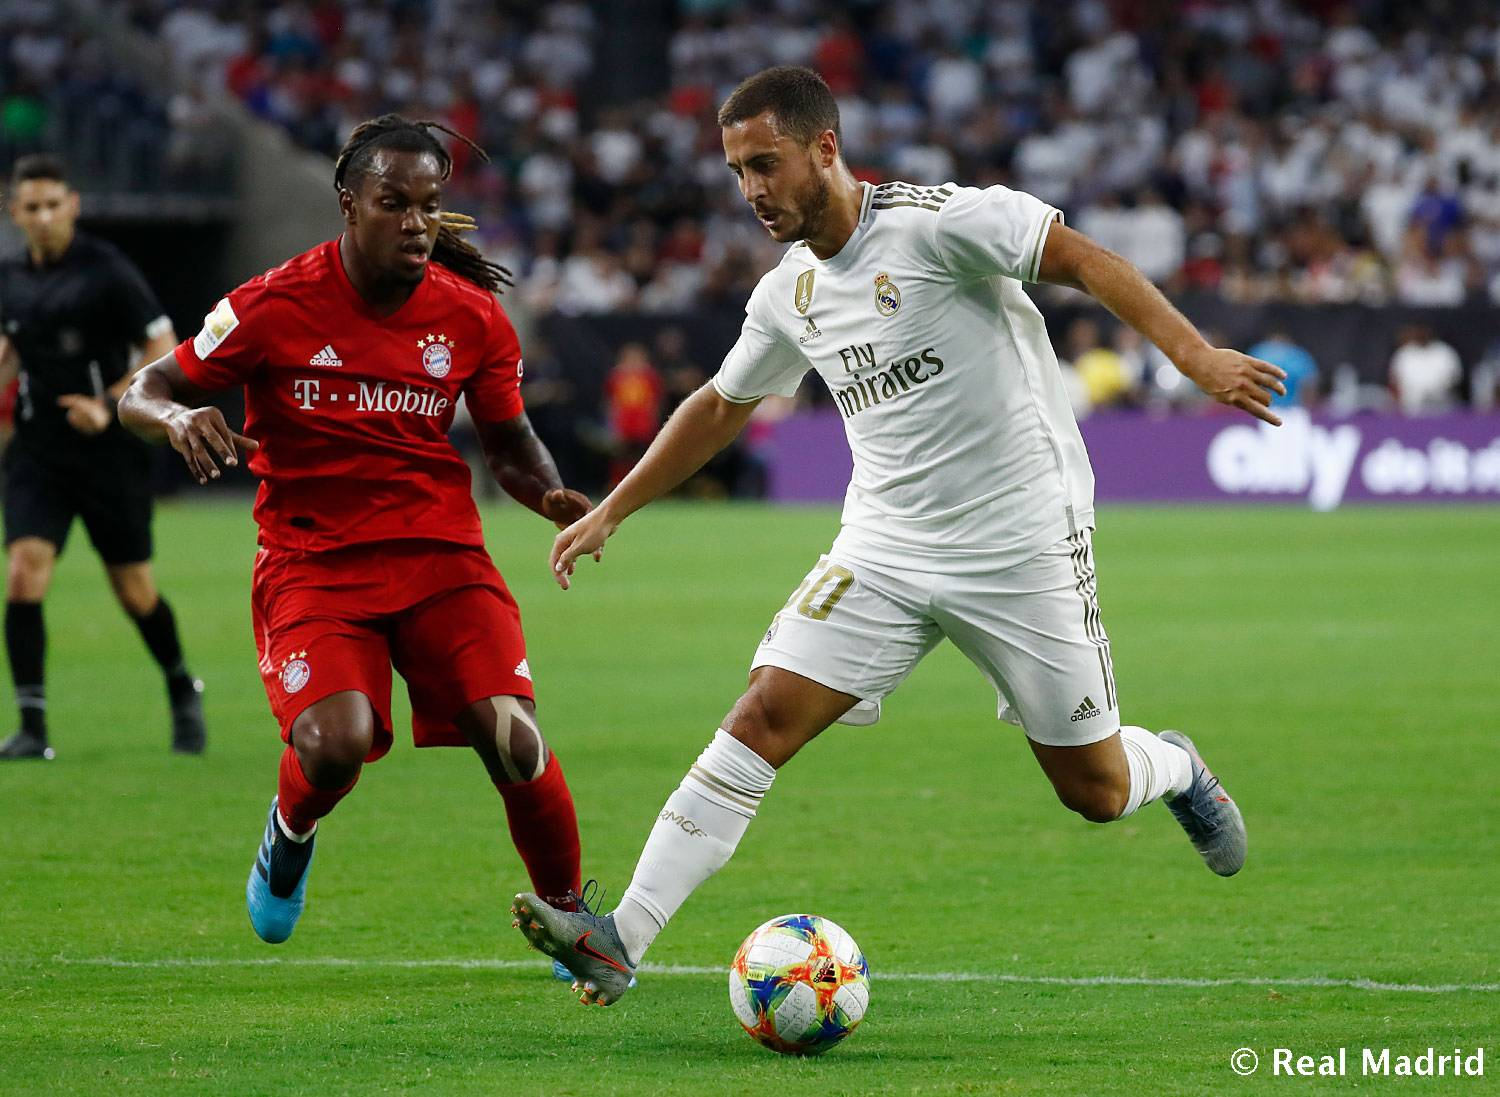 Real Madrid - Bayern de Múnich - Real Madrid - 21-07-2019